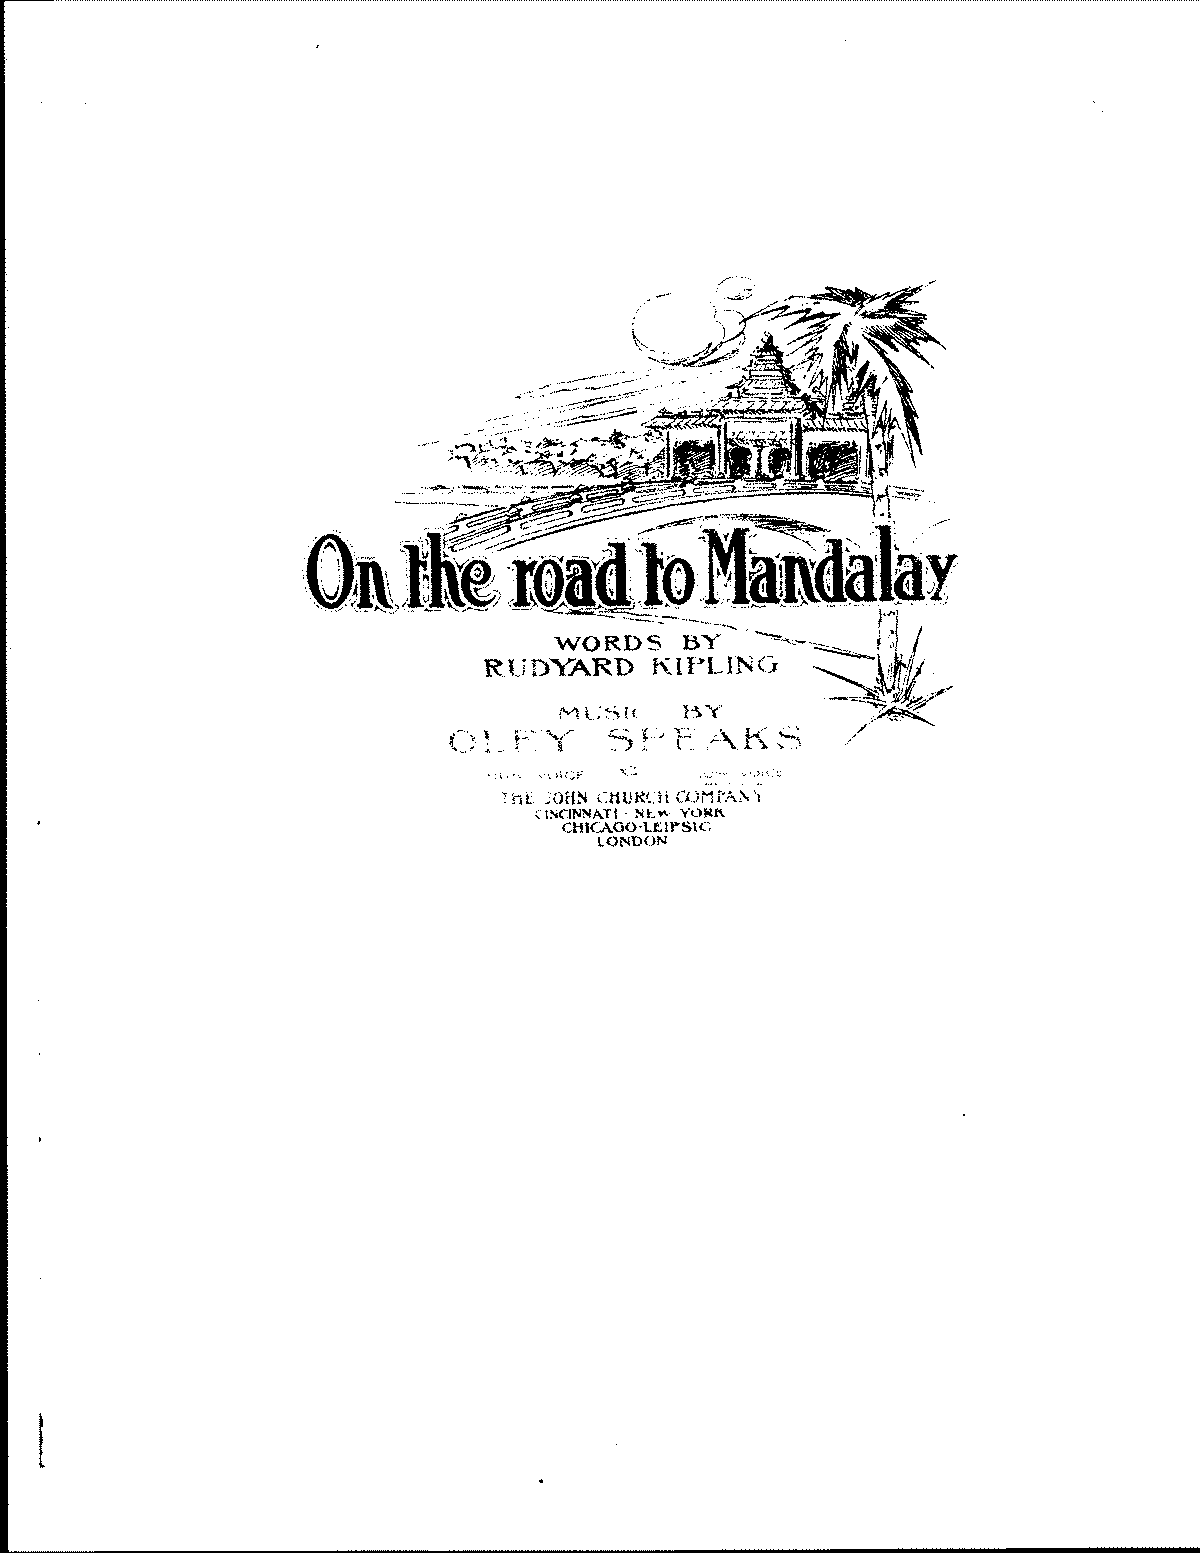 SIBLEY1802.1935.9831-Speaks On the road.pdf